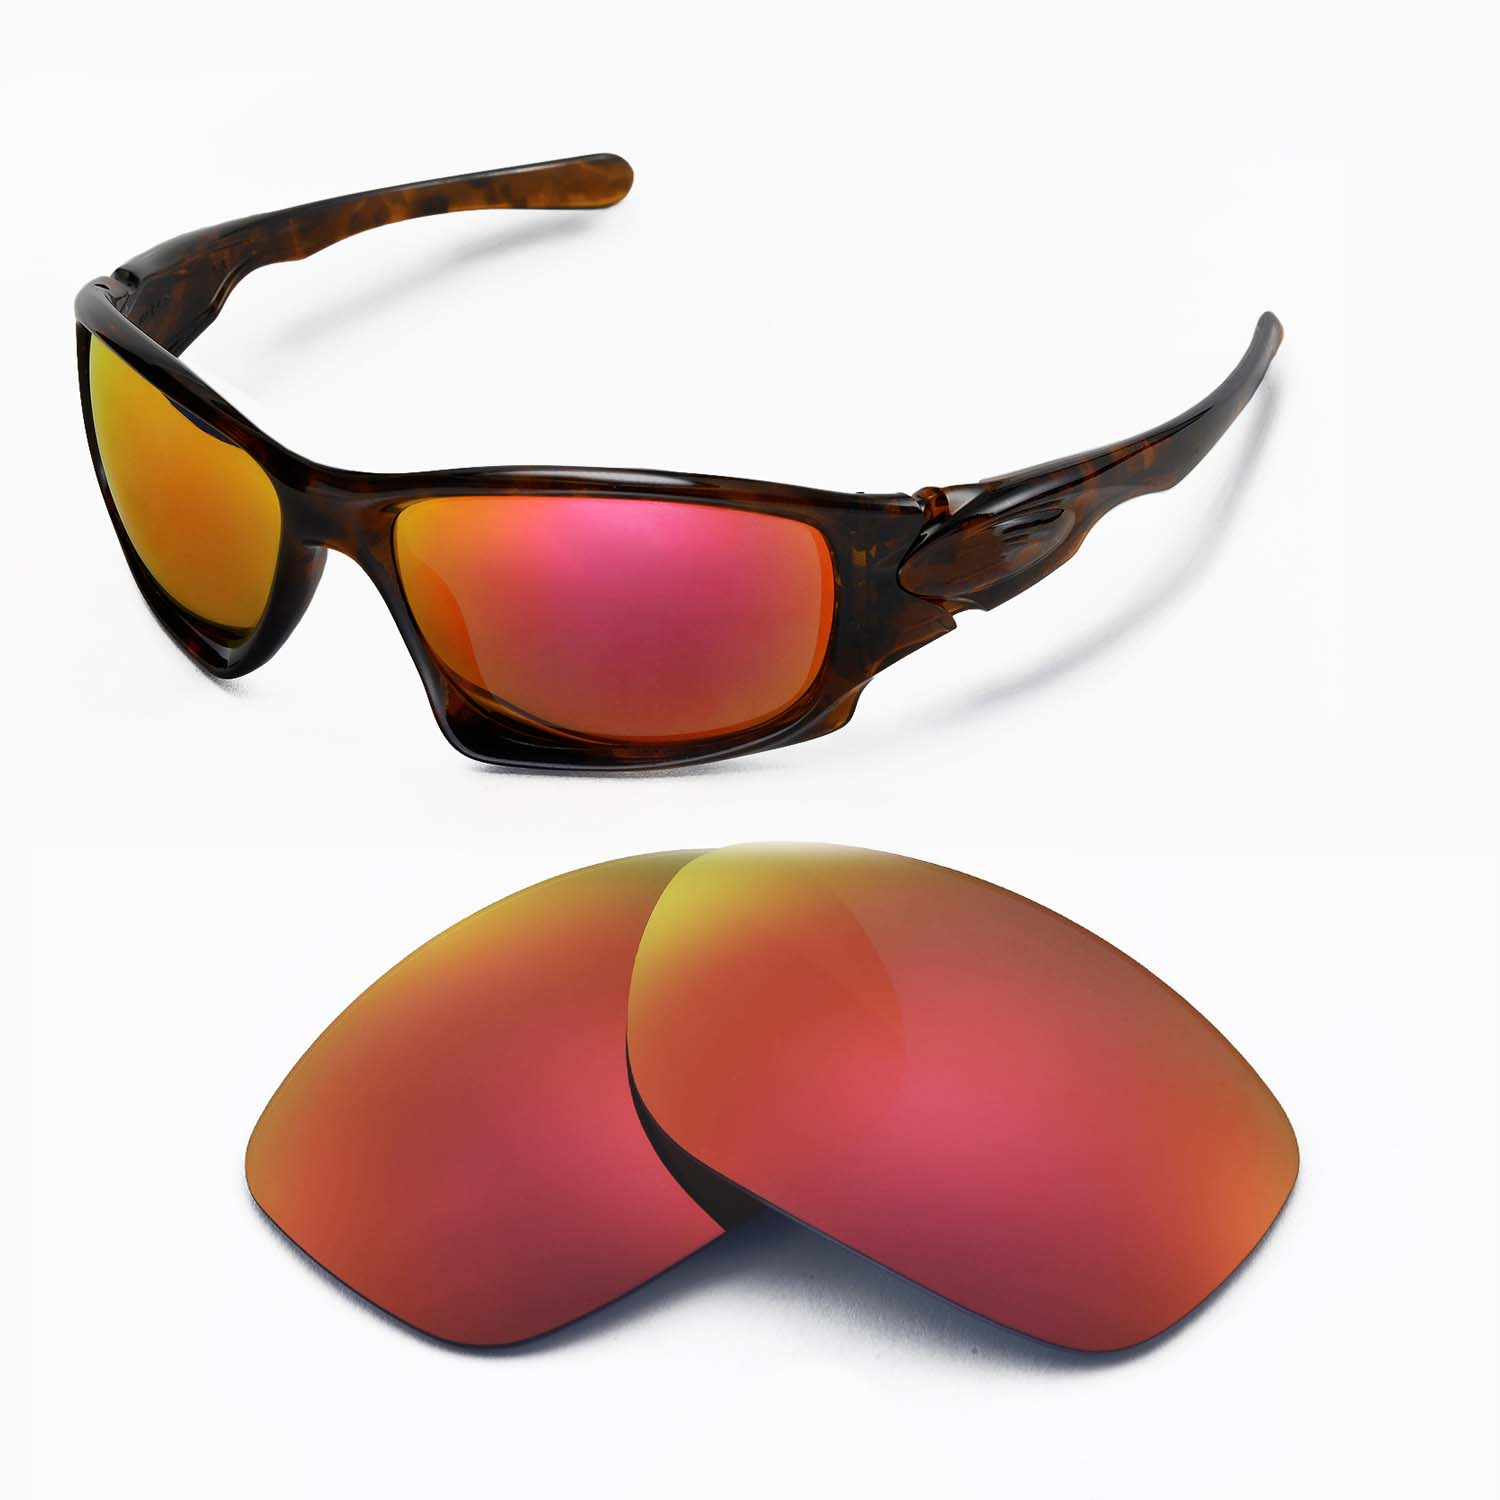 370771512c3 Details about New Walleva Polarized Fire Red Replacement Lenses For Oakley  Ten Sunglasses